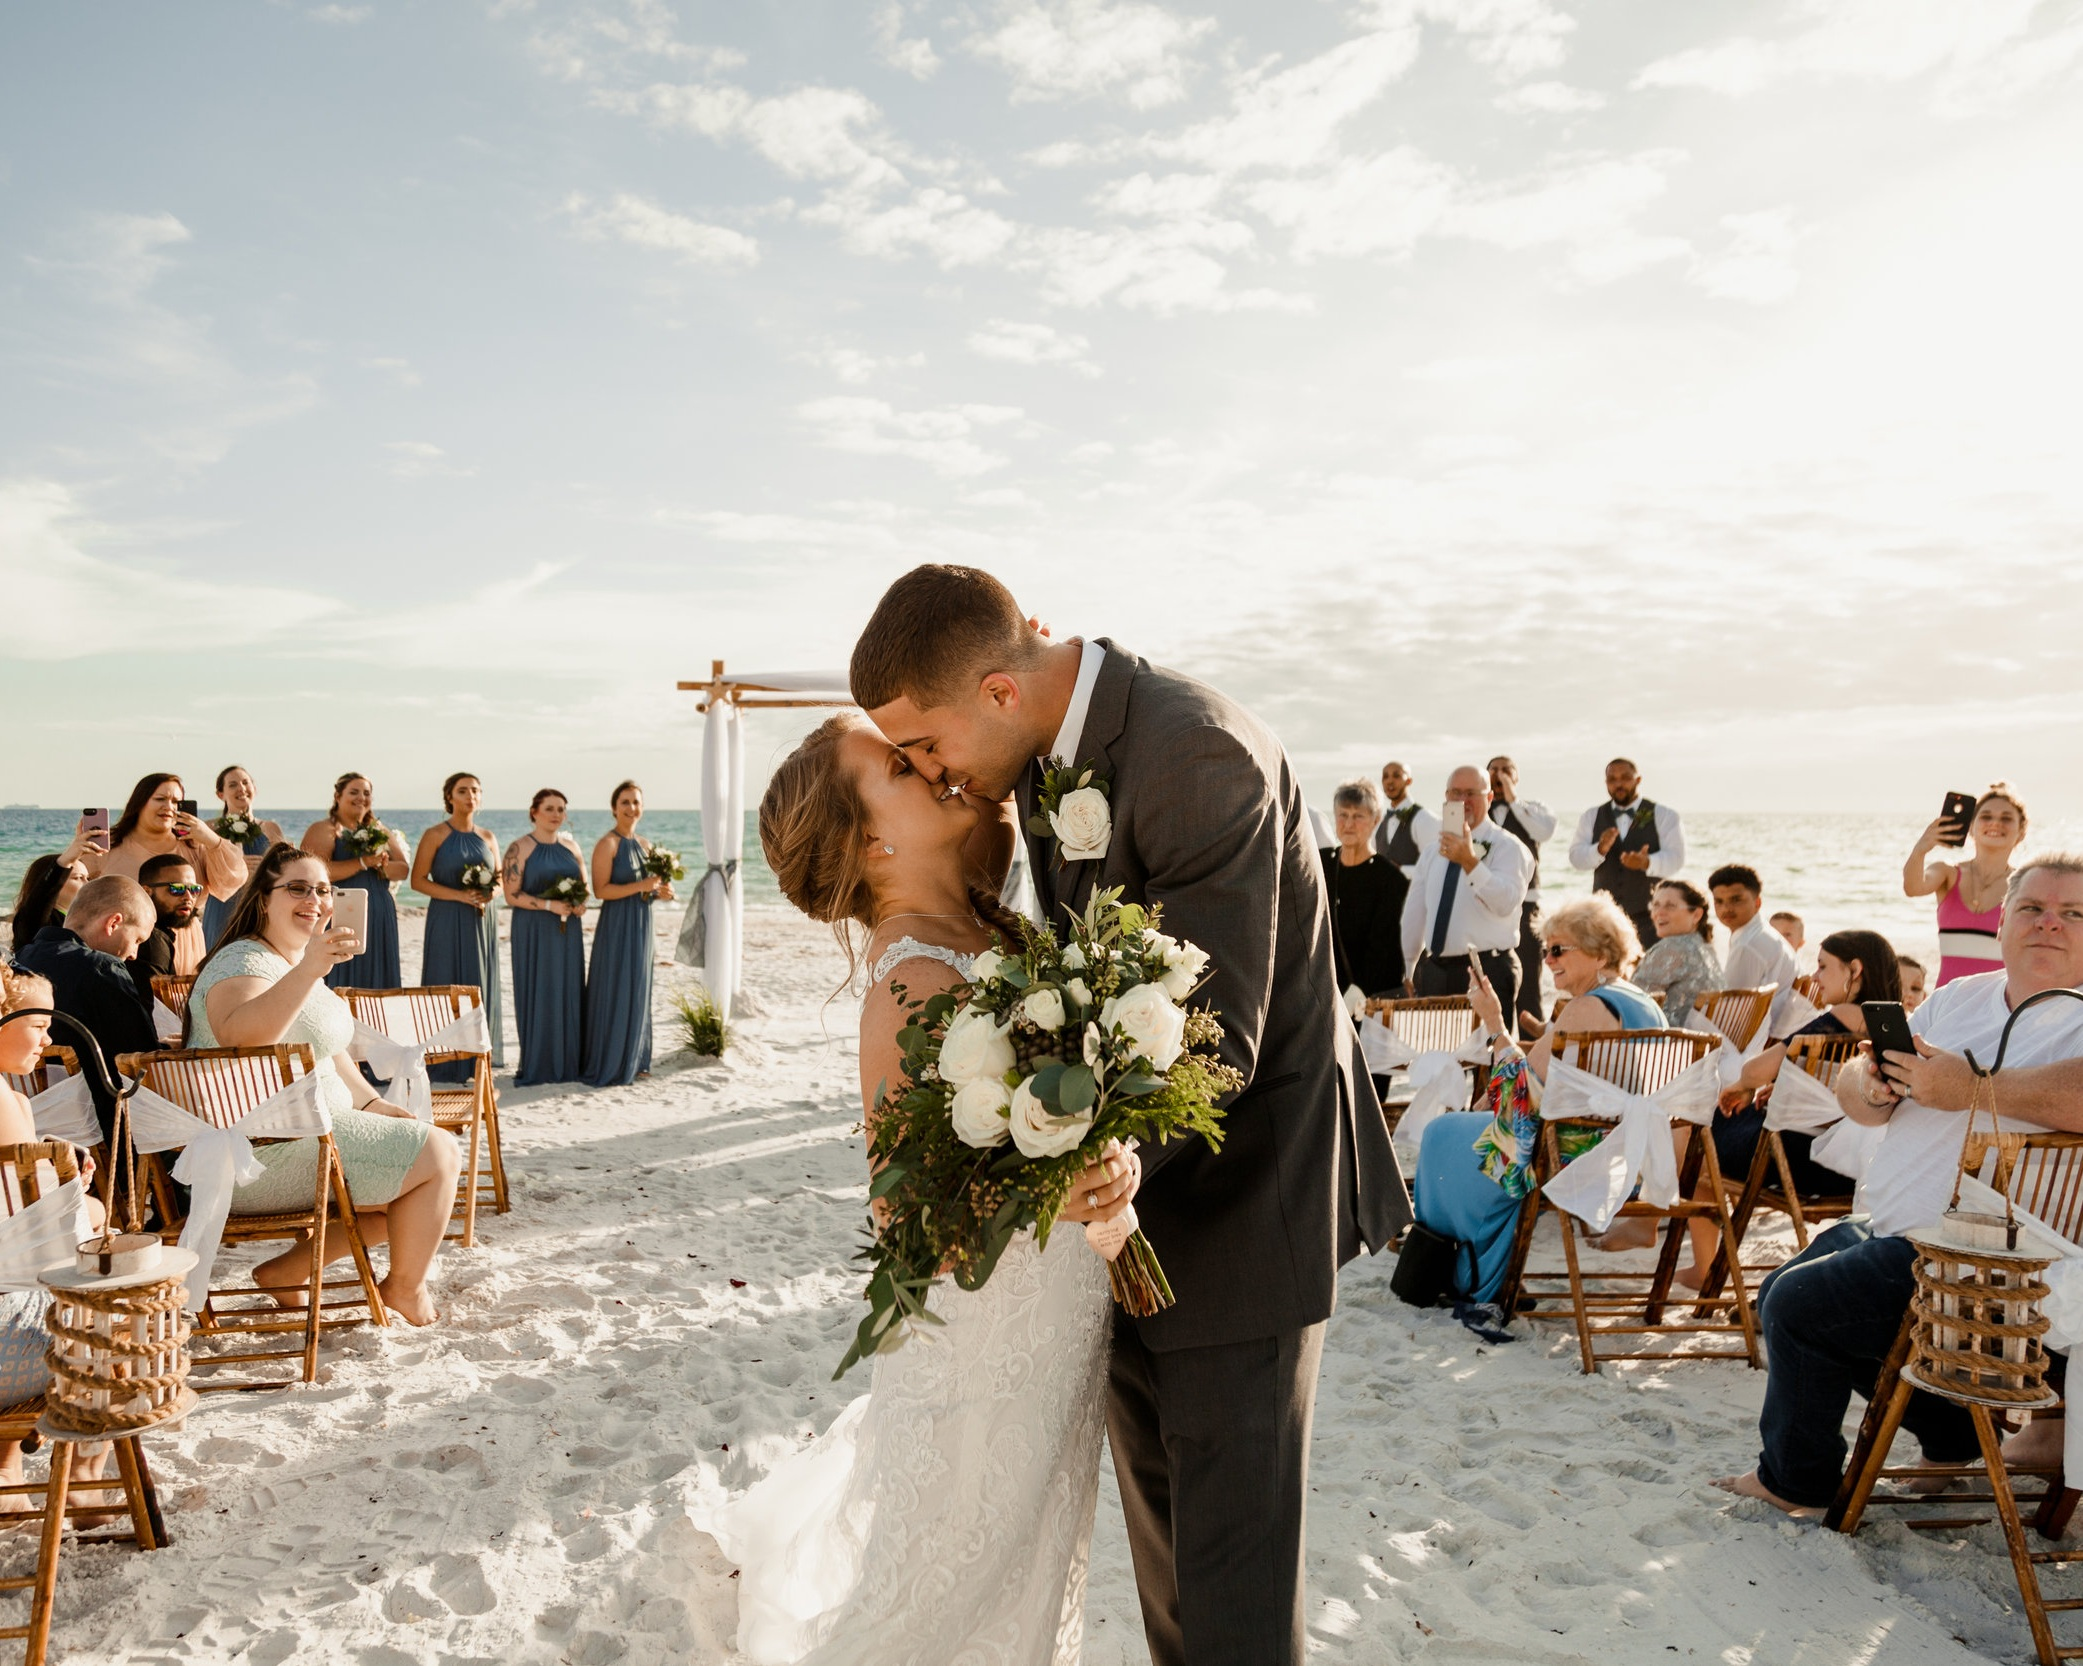 The Costantini Wedding - St. Petersburg, FL